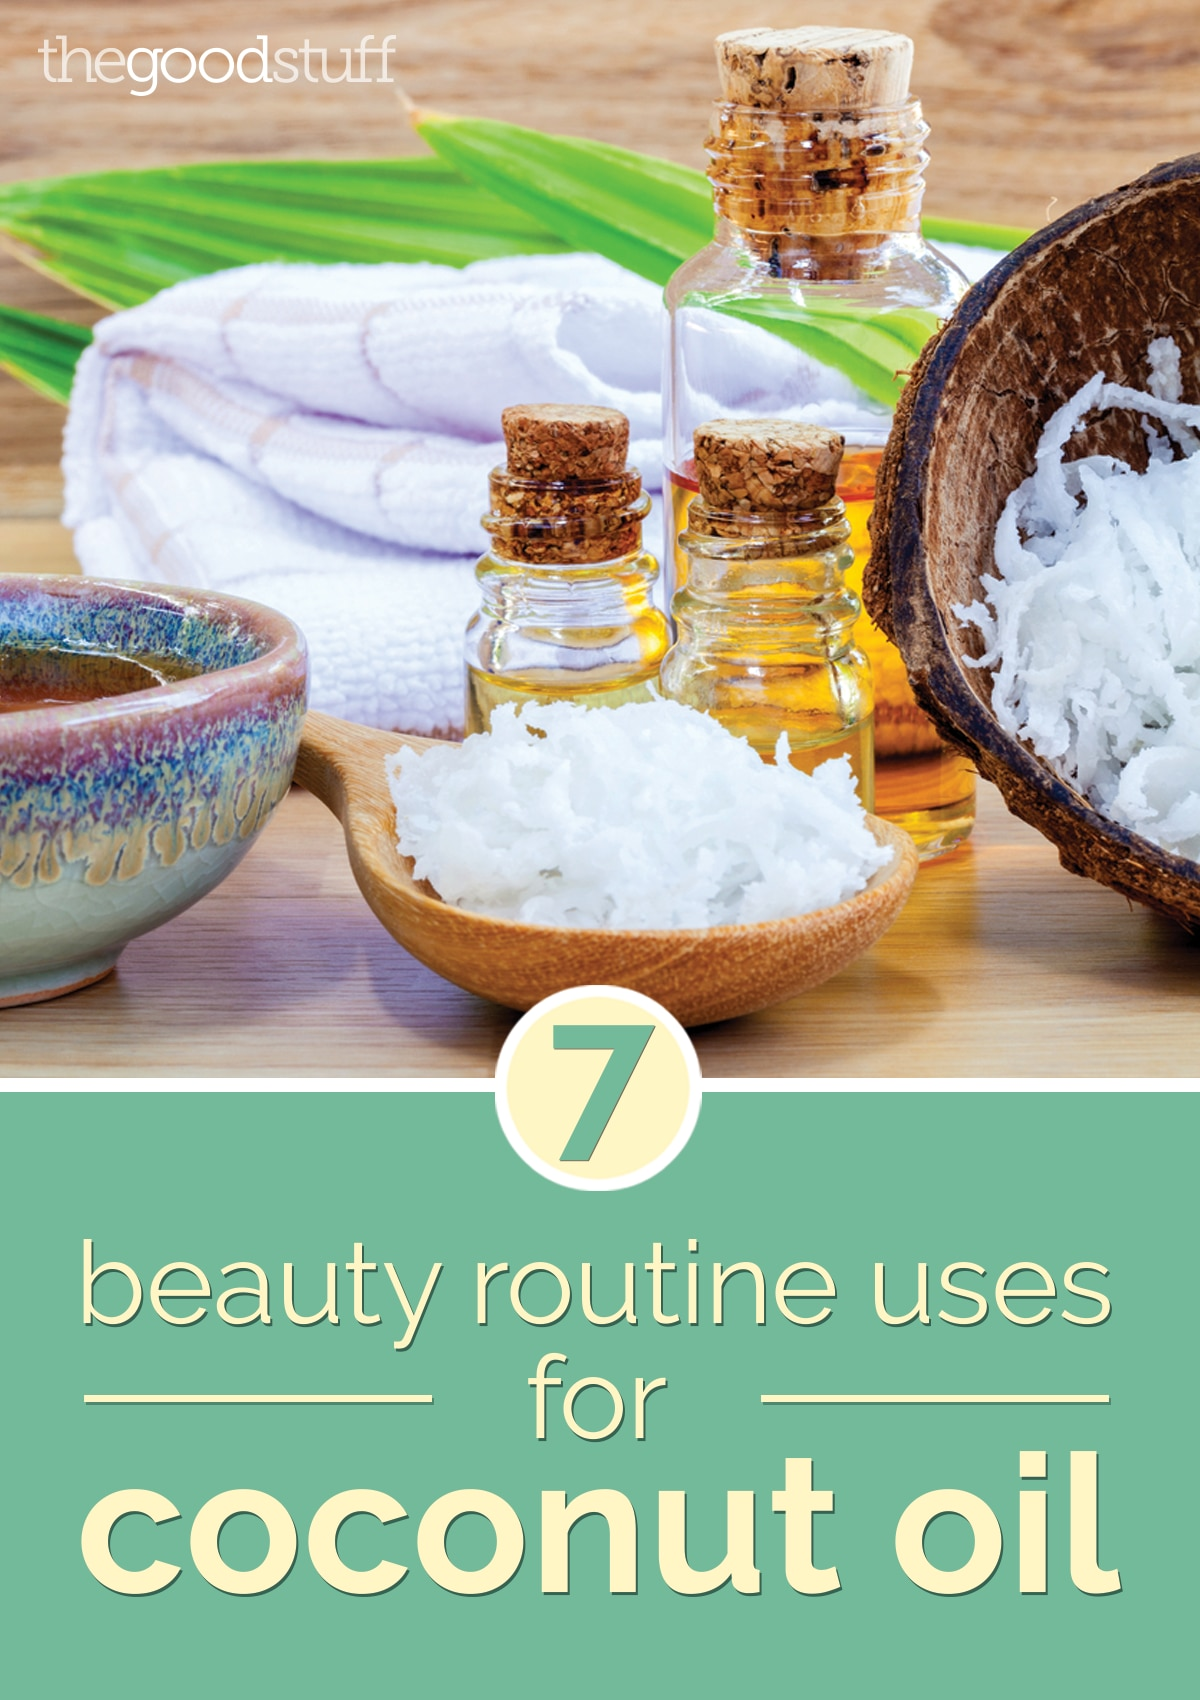 7 Beauty Routine Uses For Coconut Oil | thegoodstuff